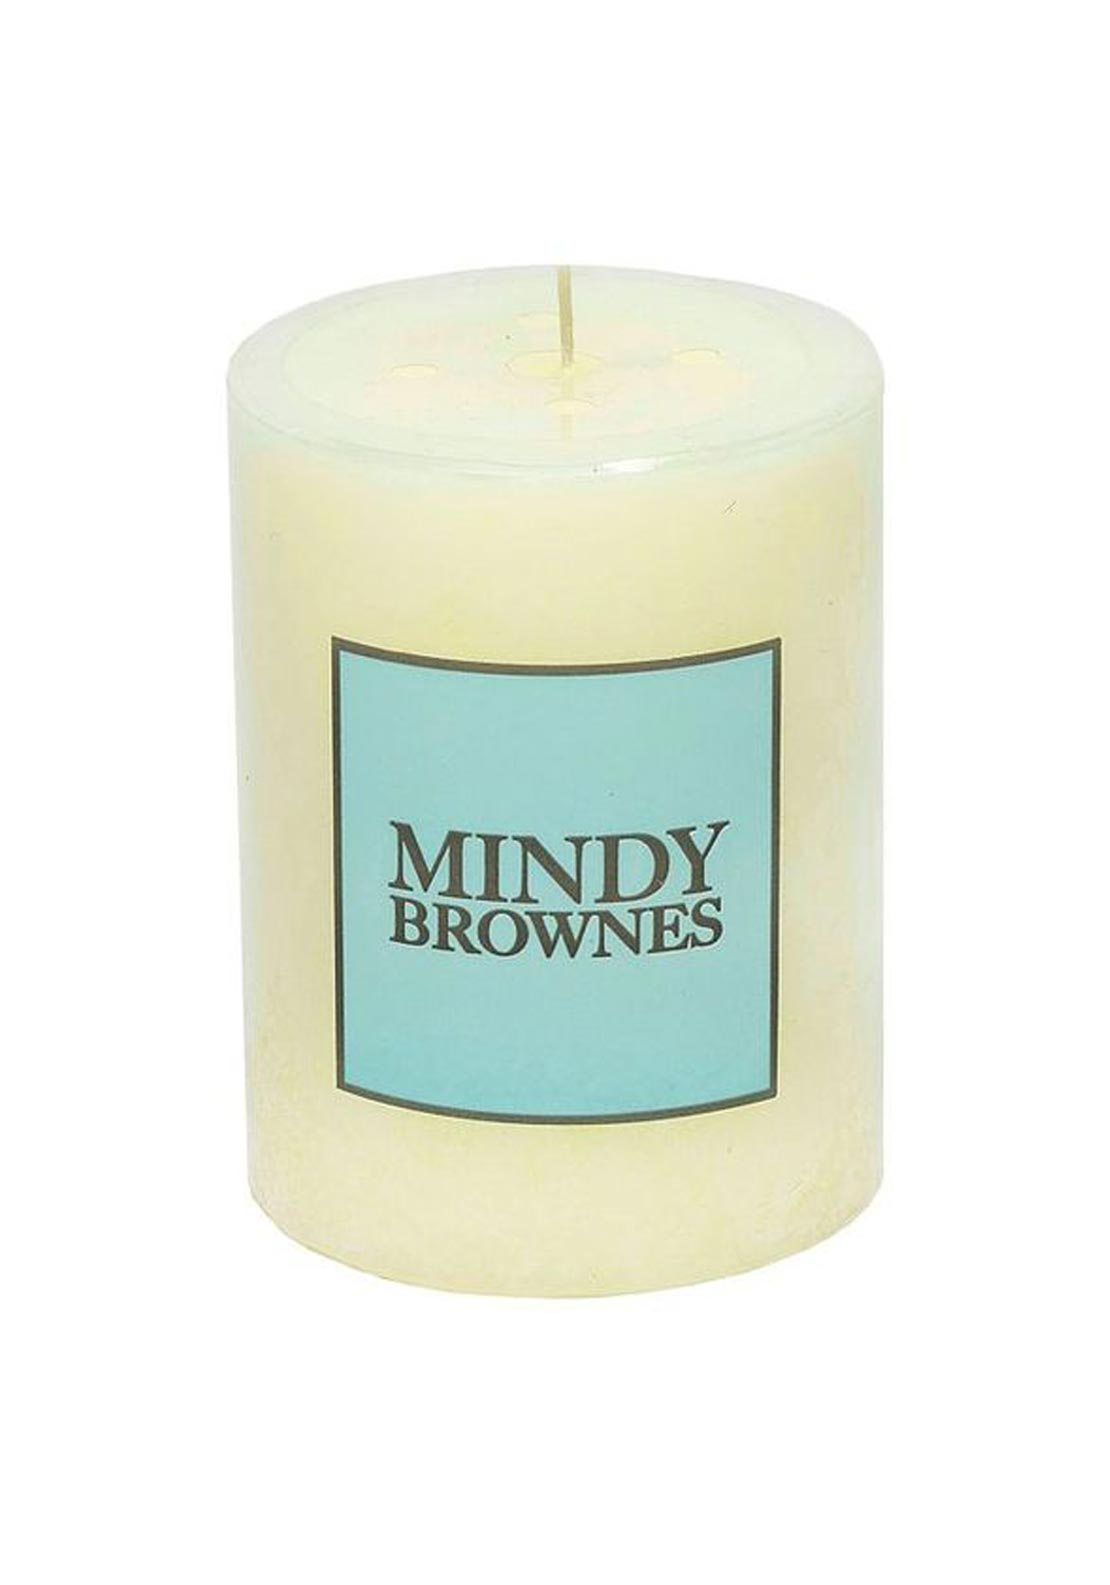 Mindy Brownes Vanilla Scented Pillar Candle, Large